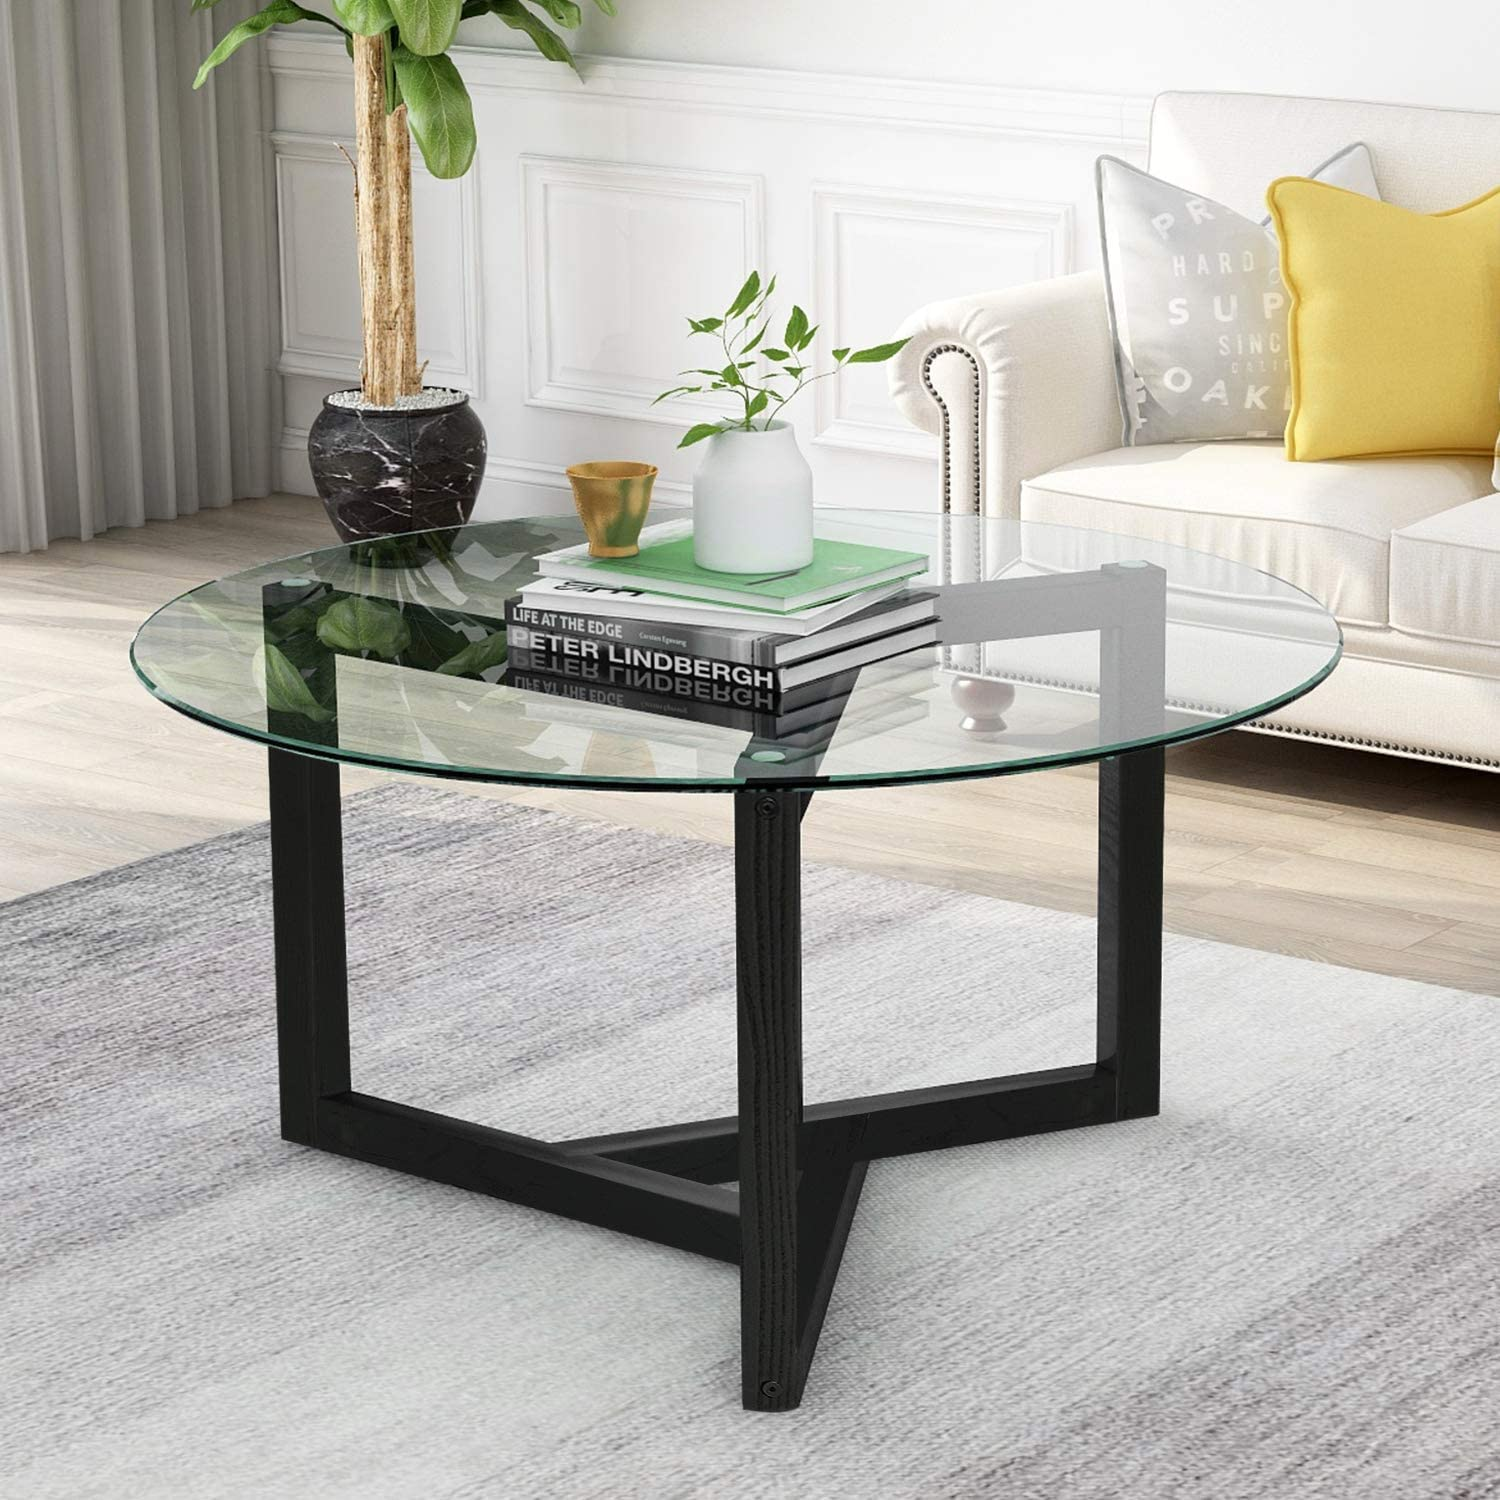 Amazon Com Modern Round Coffee Table 35 Glass Round Coffee Table Easy Assembly Tempered Glass Coffee Table With Wood Frame For Living Room Dining Room Kitchen Dining